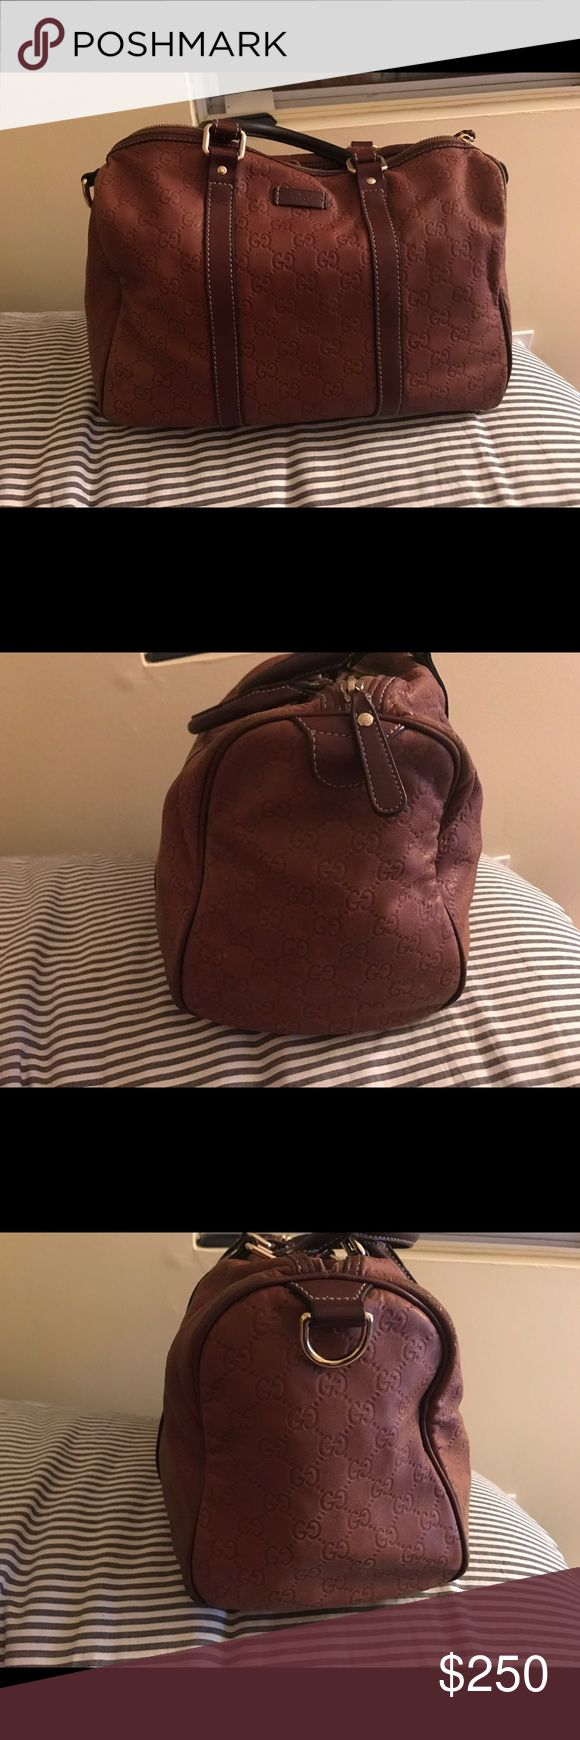 Gucci Boston Bag Pre-owned Gucci Boston Handbag. Butter soft tobacco leather. This item does have some wear, However, it's still in great condition. I am selling this bag for a low low price of $250. This bag can easily be restored if taken to the correct leather specialist or sent back to Gucci. The bag comes with a dust bag. I bought this bag years ago, unfortunately I do not have a receipt. Please let me know if I have any questions. Gucci Bags